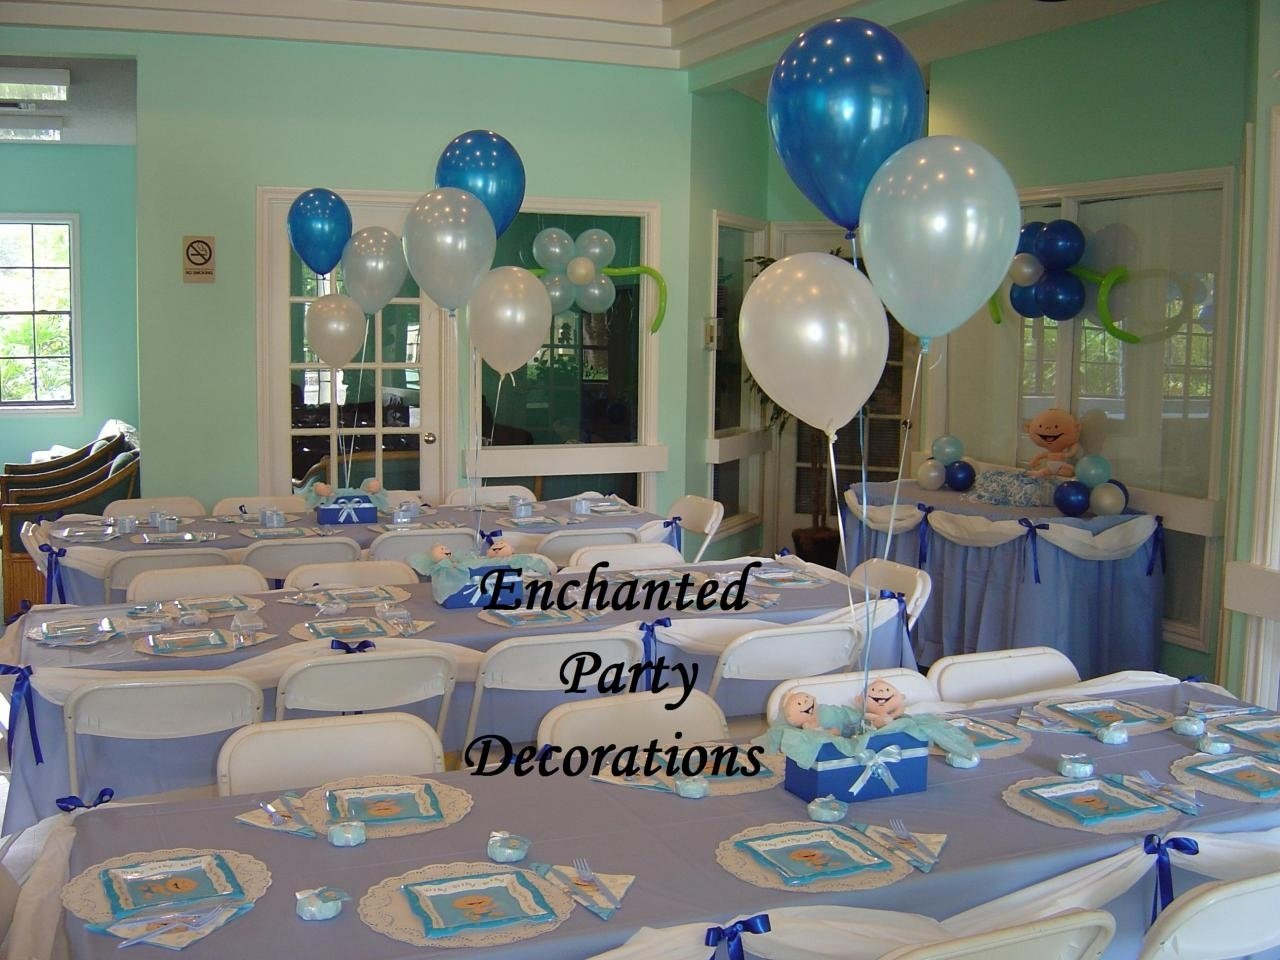 10 Unique Baby Shower Decoration Ideas For Boy baby shower table decorations ideas omega center ideas for baby 2021